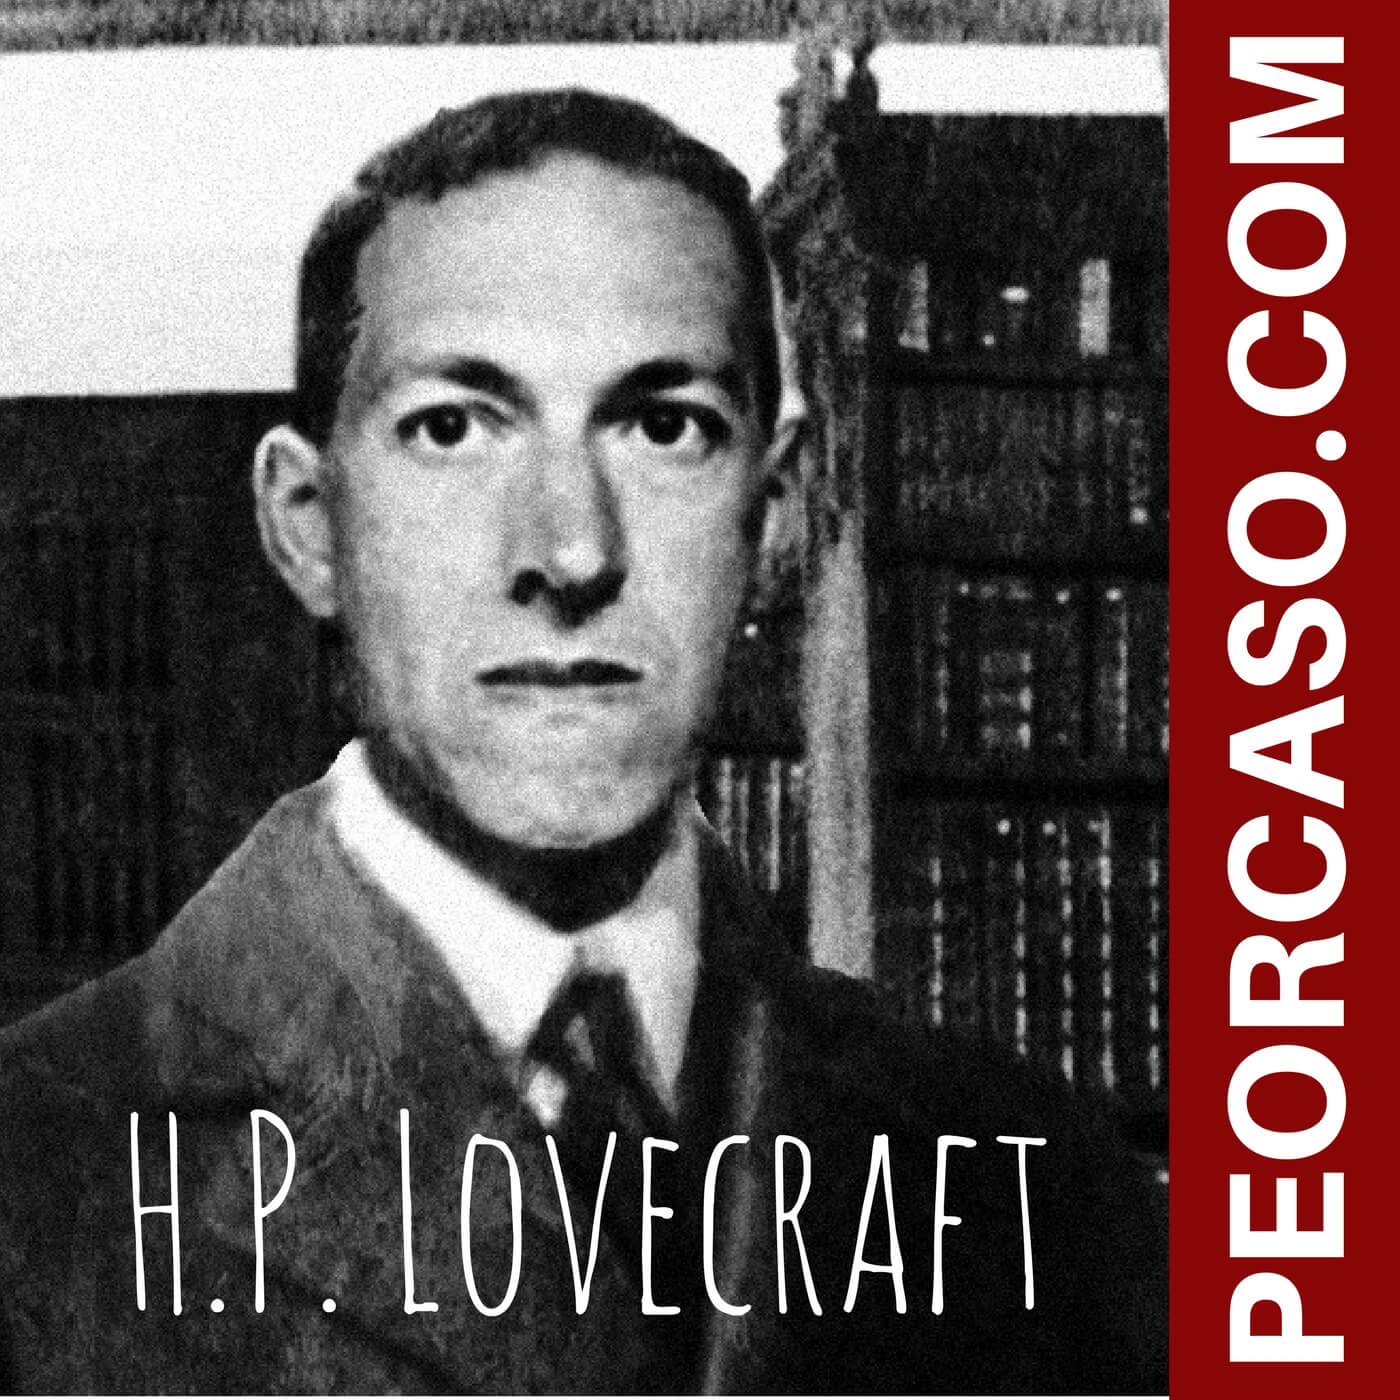 9 - HP Lovecraft